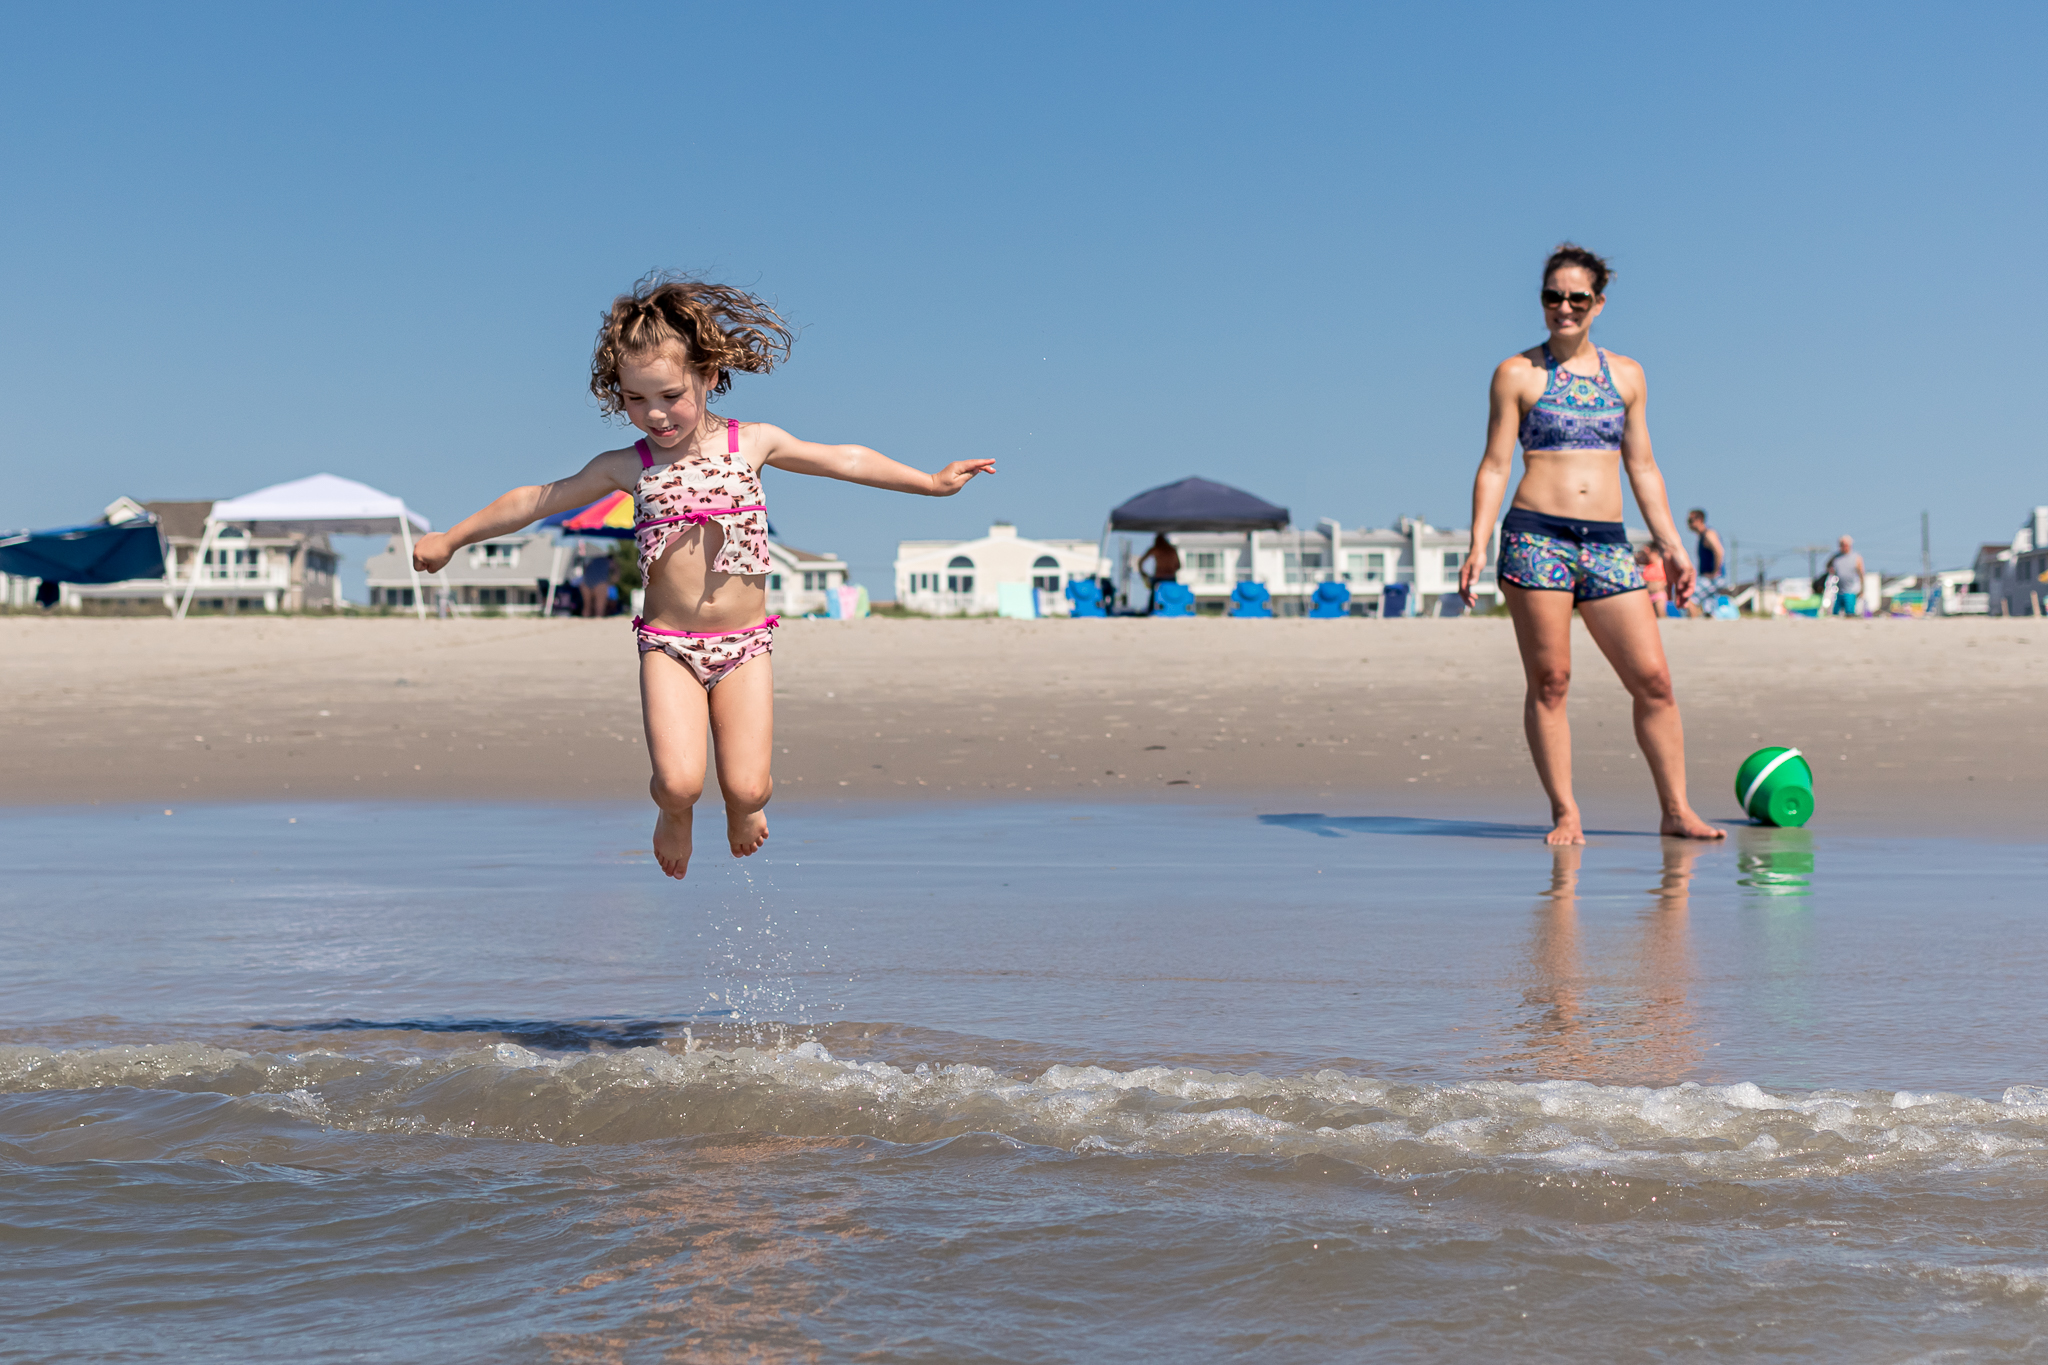 Nancy Elizabeth Photography | Jersey Shore Documentary Beach Photographer | Girl Jumping Waves Mom Watch